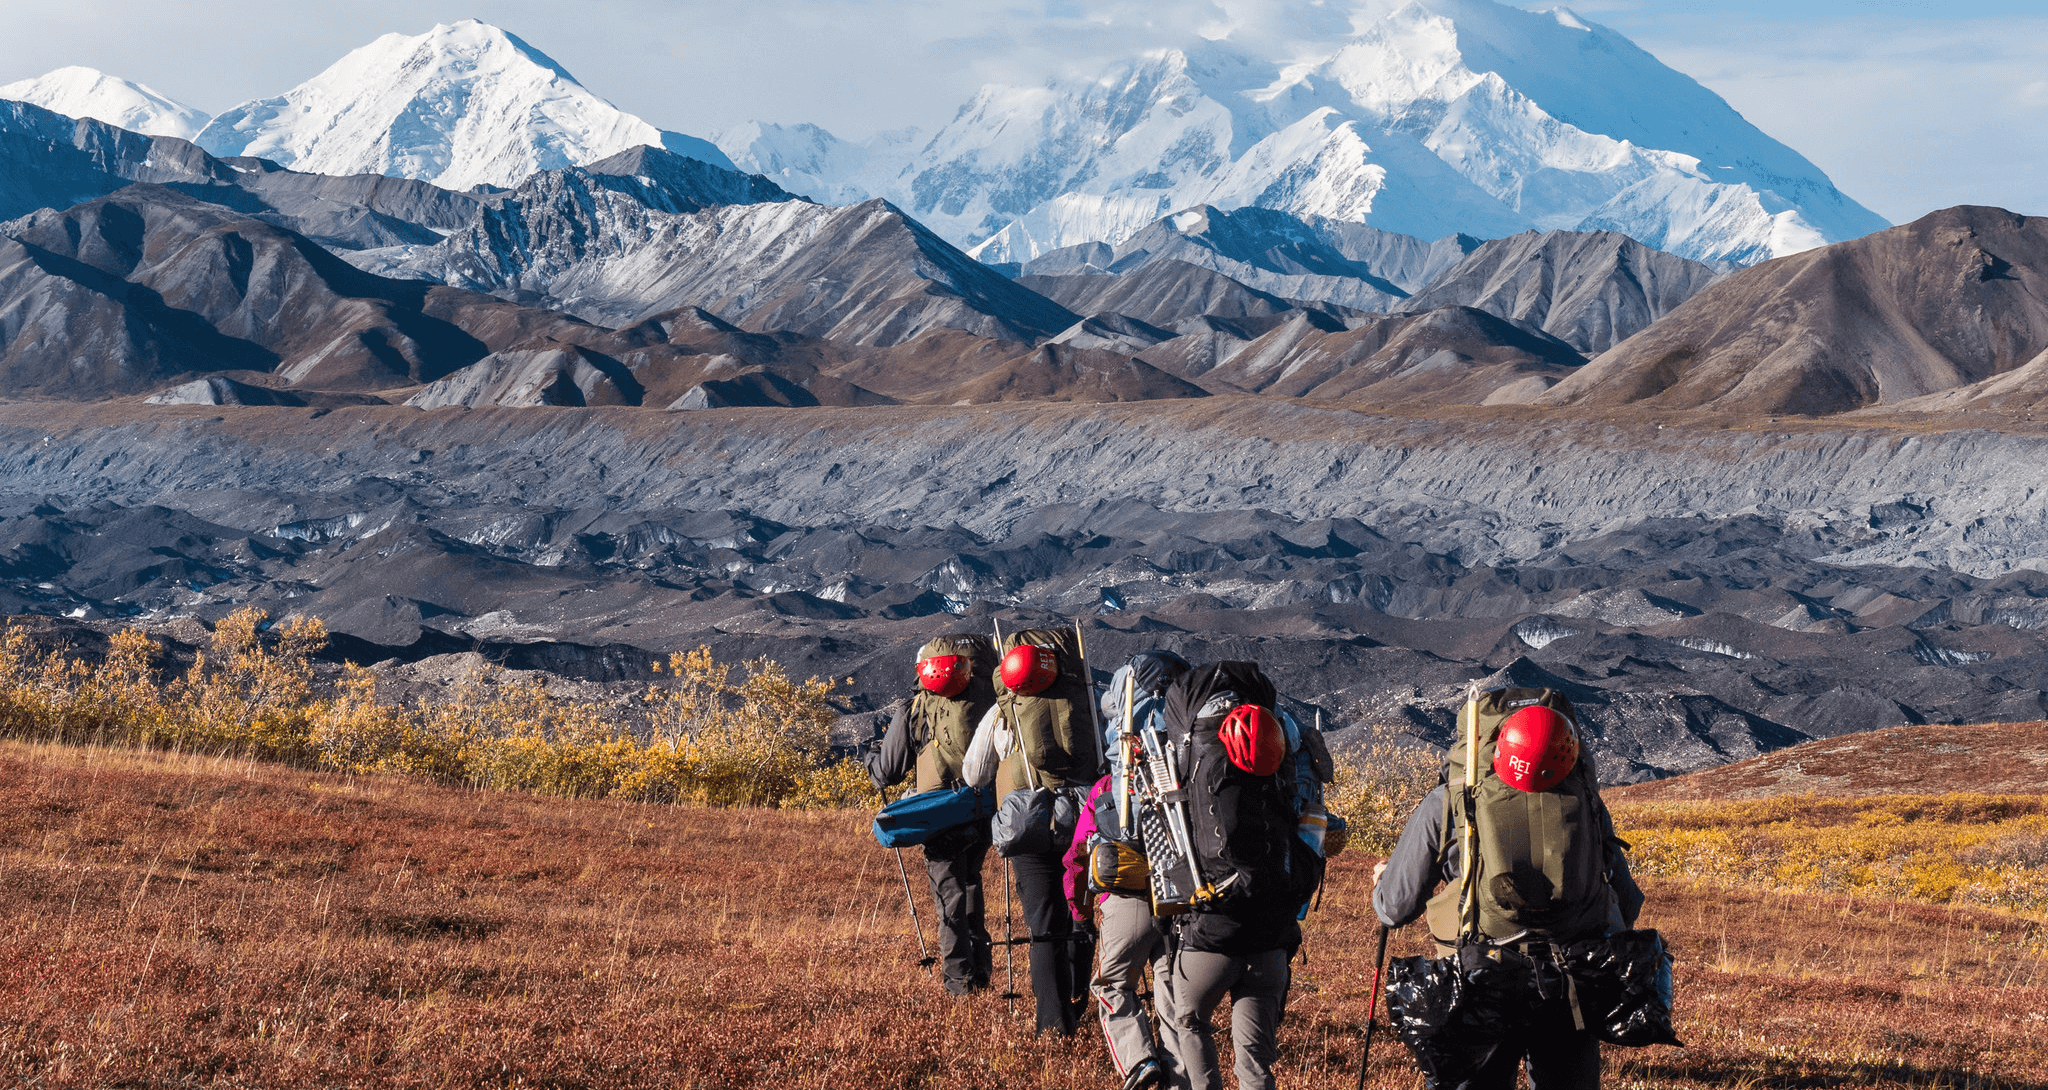 Hikers Heading off to distant mountains